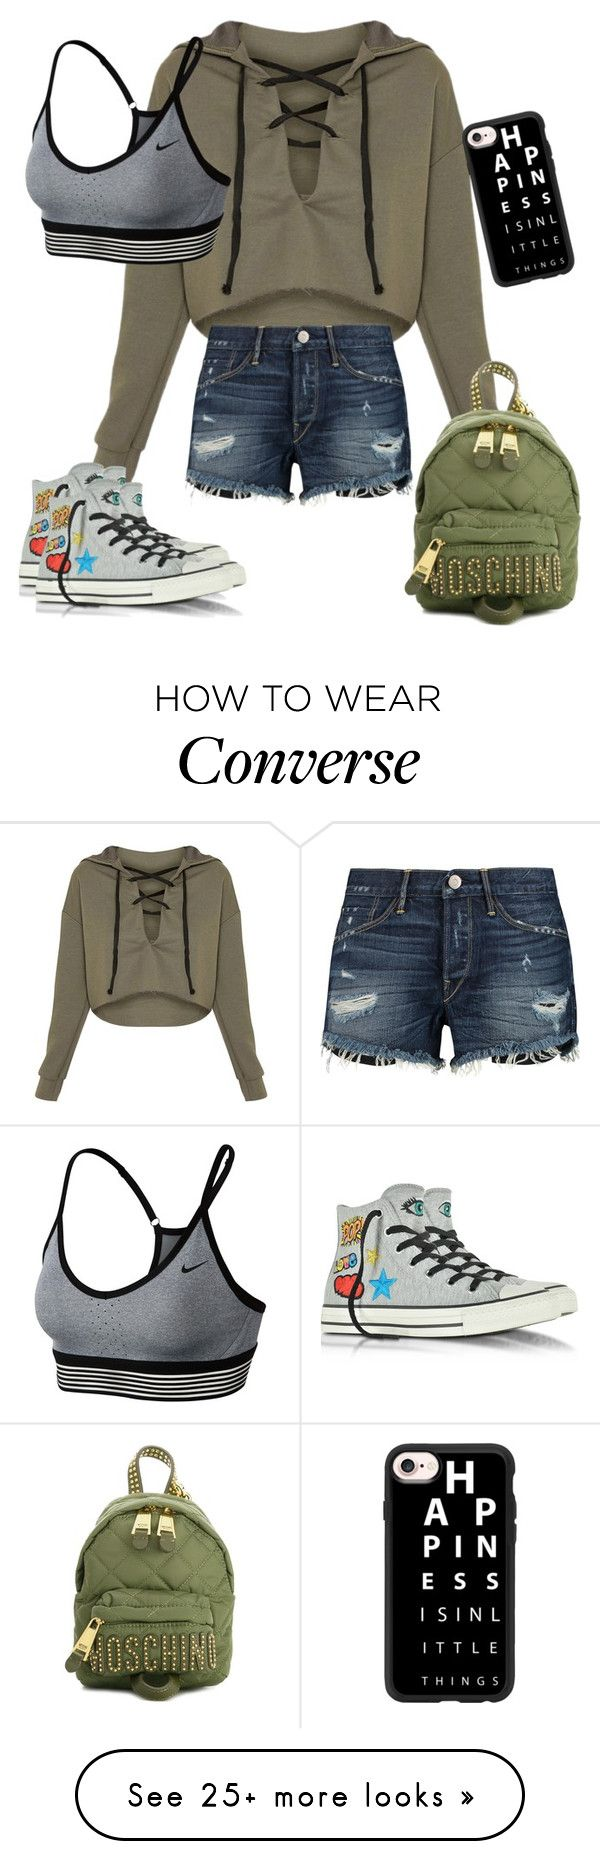 """Untitled #363"" by amea412 on Polyvore featuring 3x1, NIKE, Moschino, Converse and Casetify"